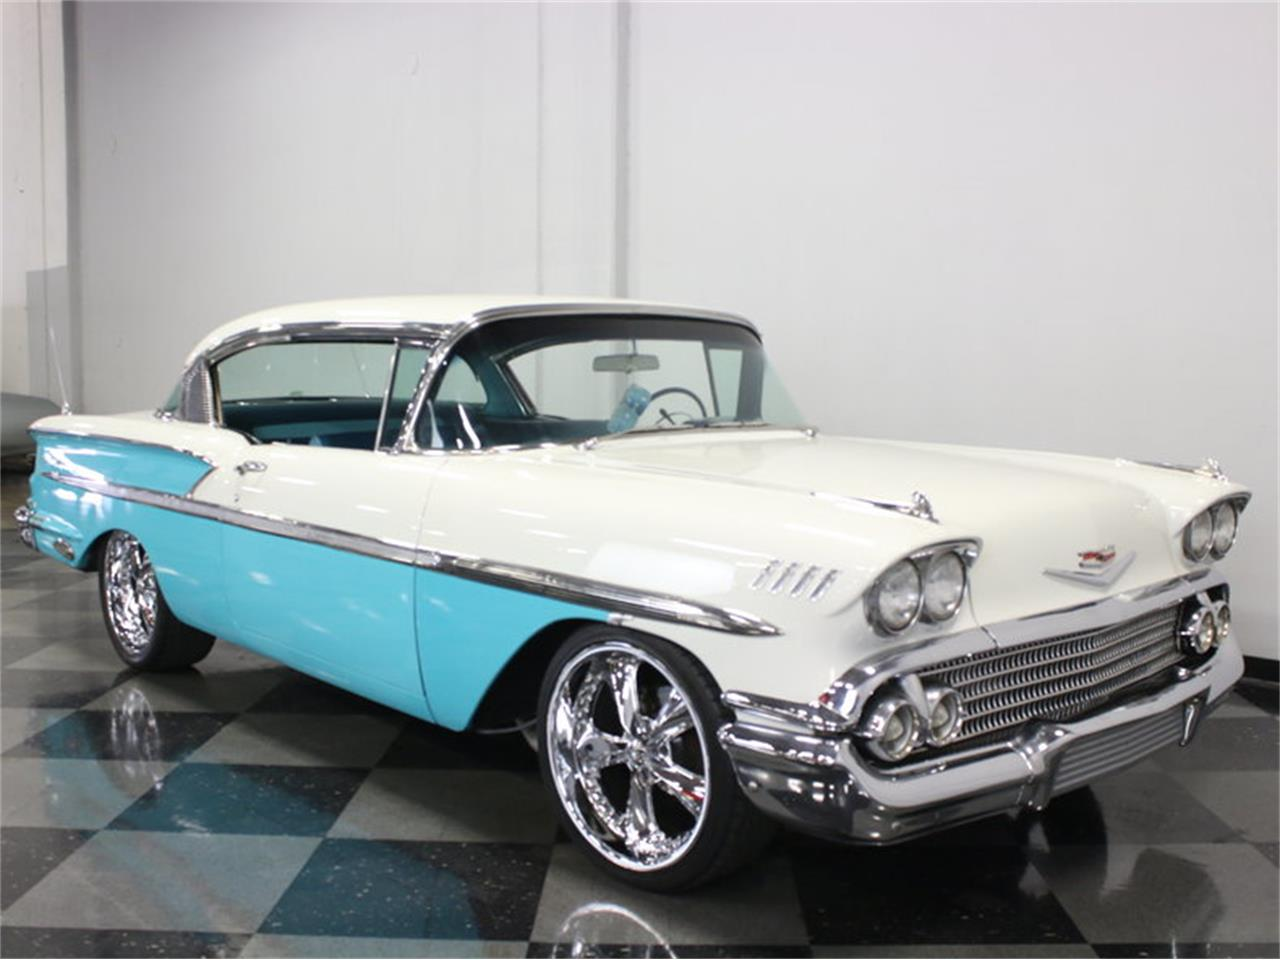 For Sale: 1958 Chevrolet Bel Air in Ft Worth, Texas